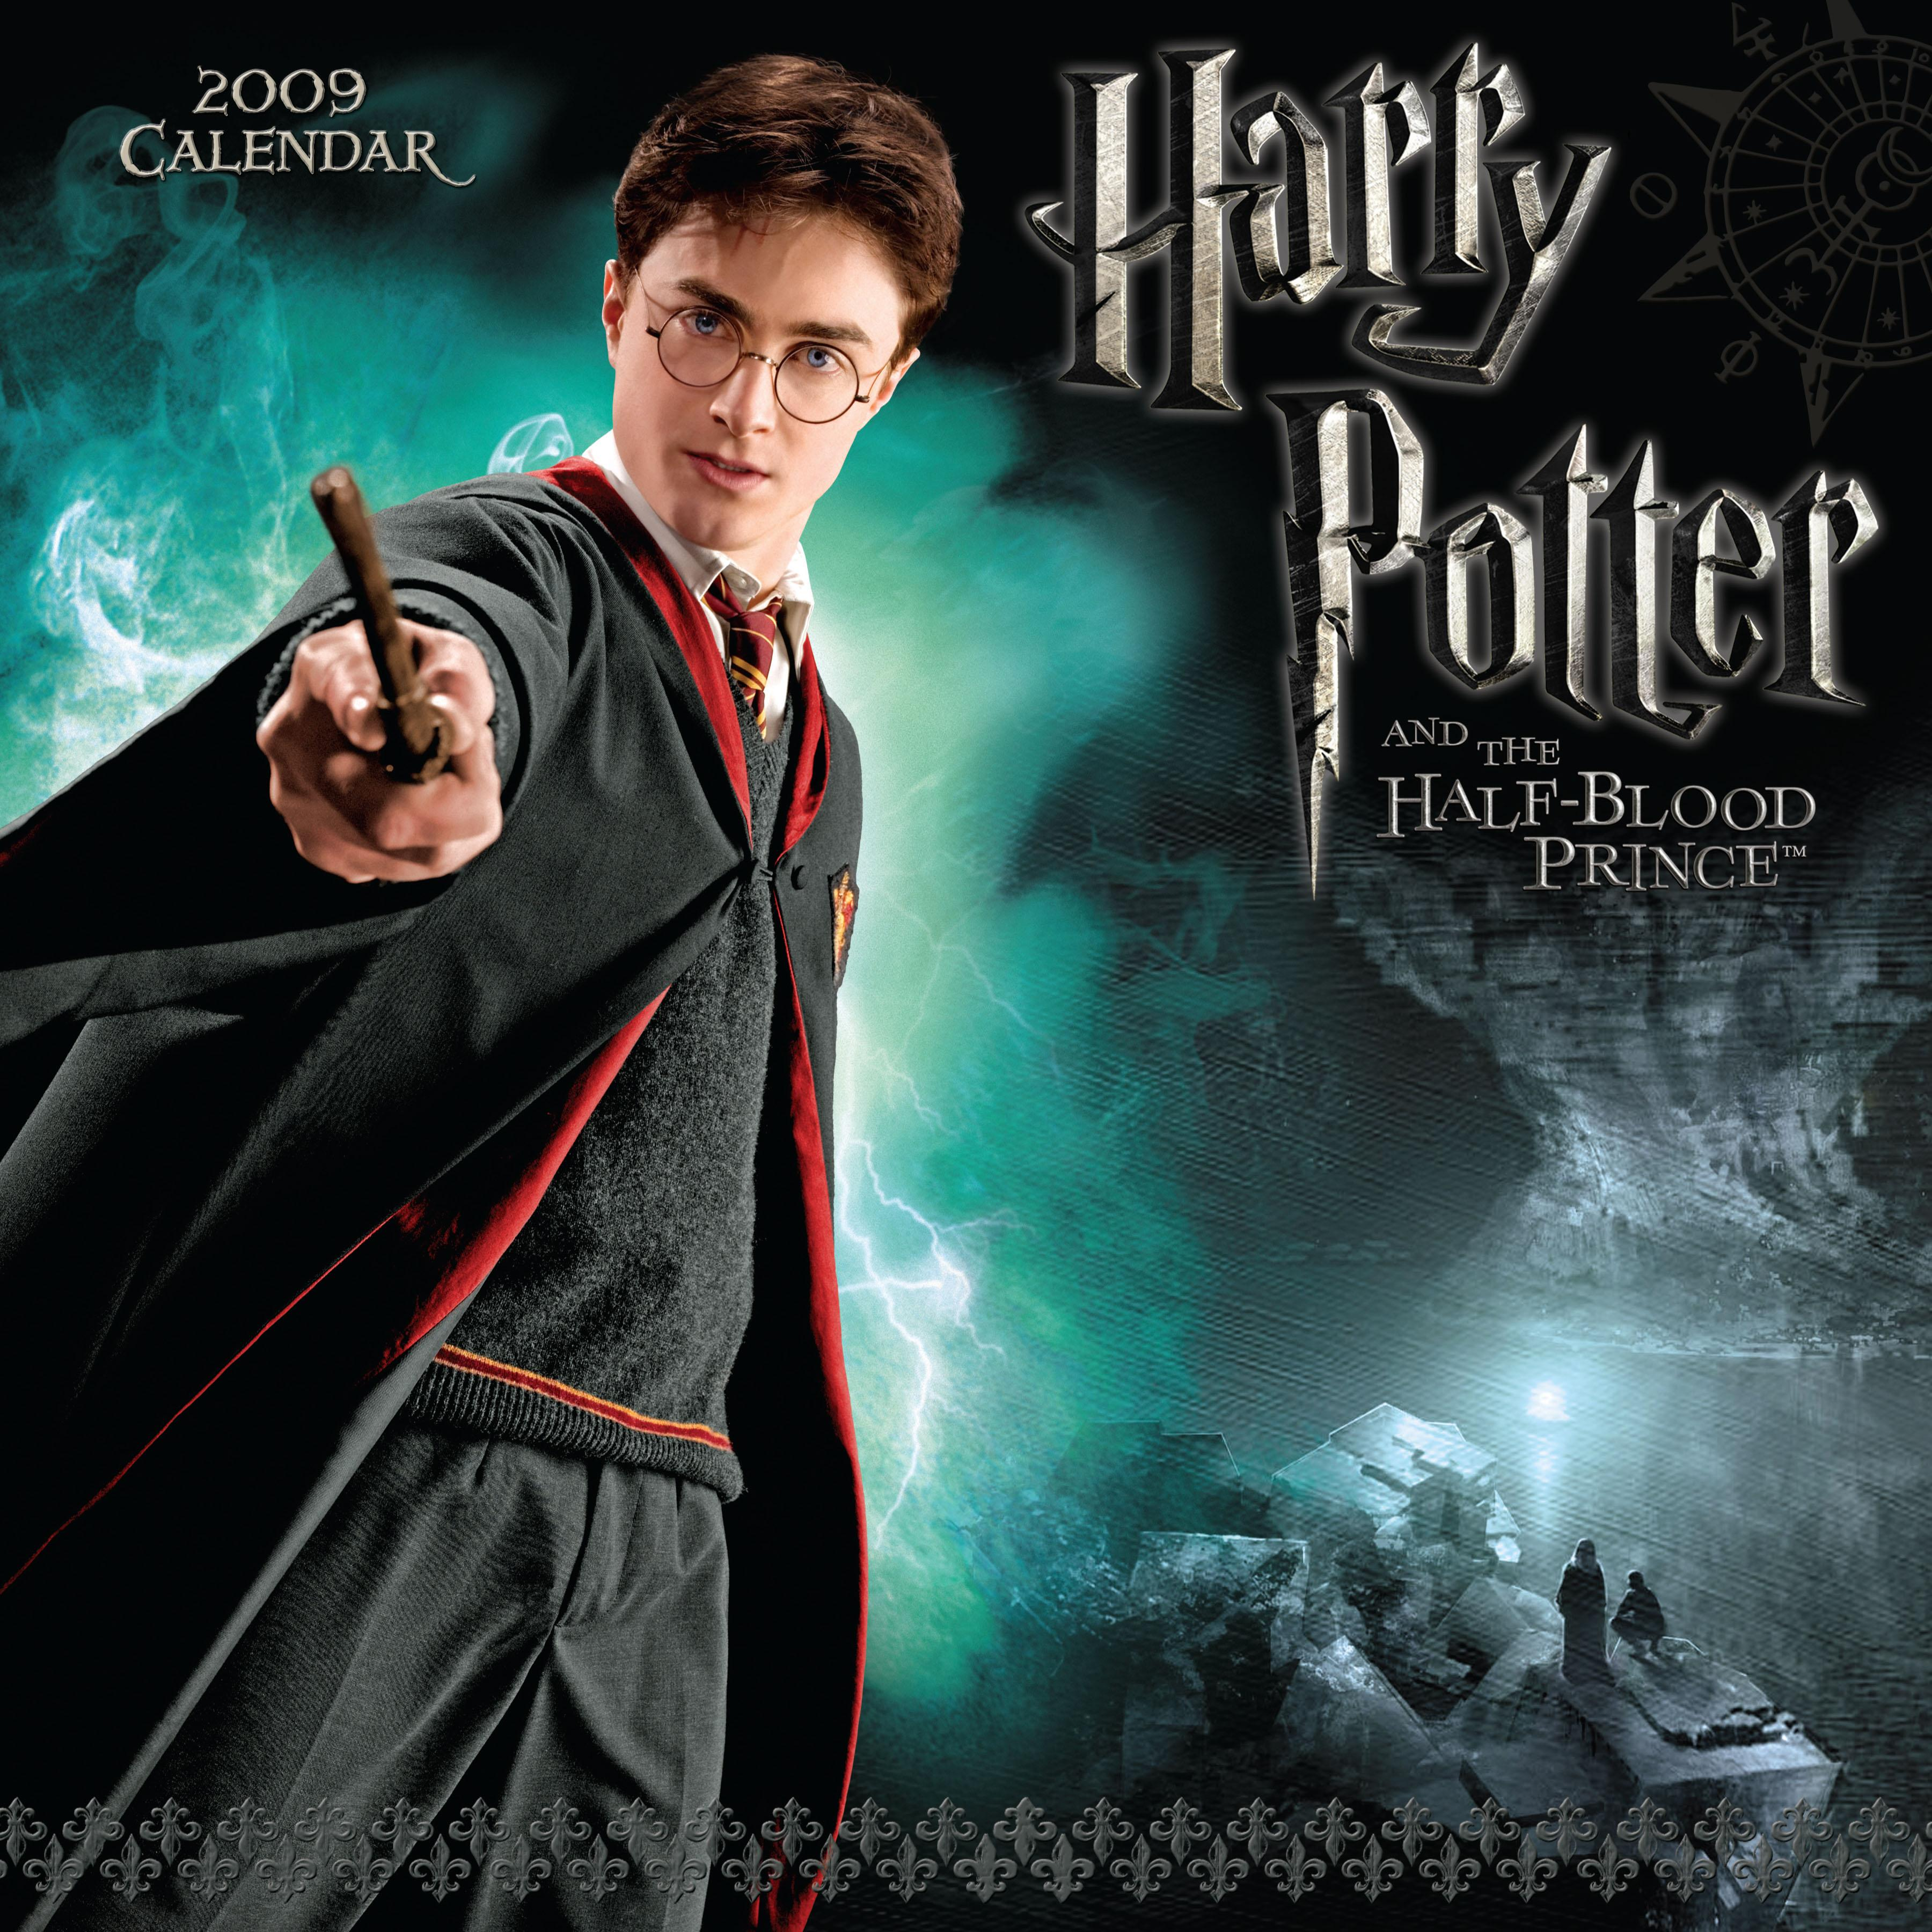 Harry Potter and the Half-Blood Prince 2009 – Movie wallpaper